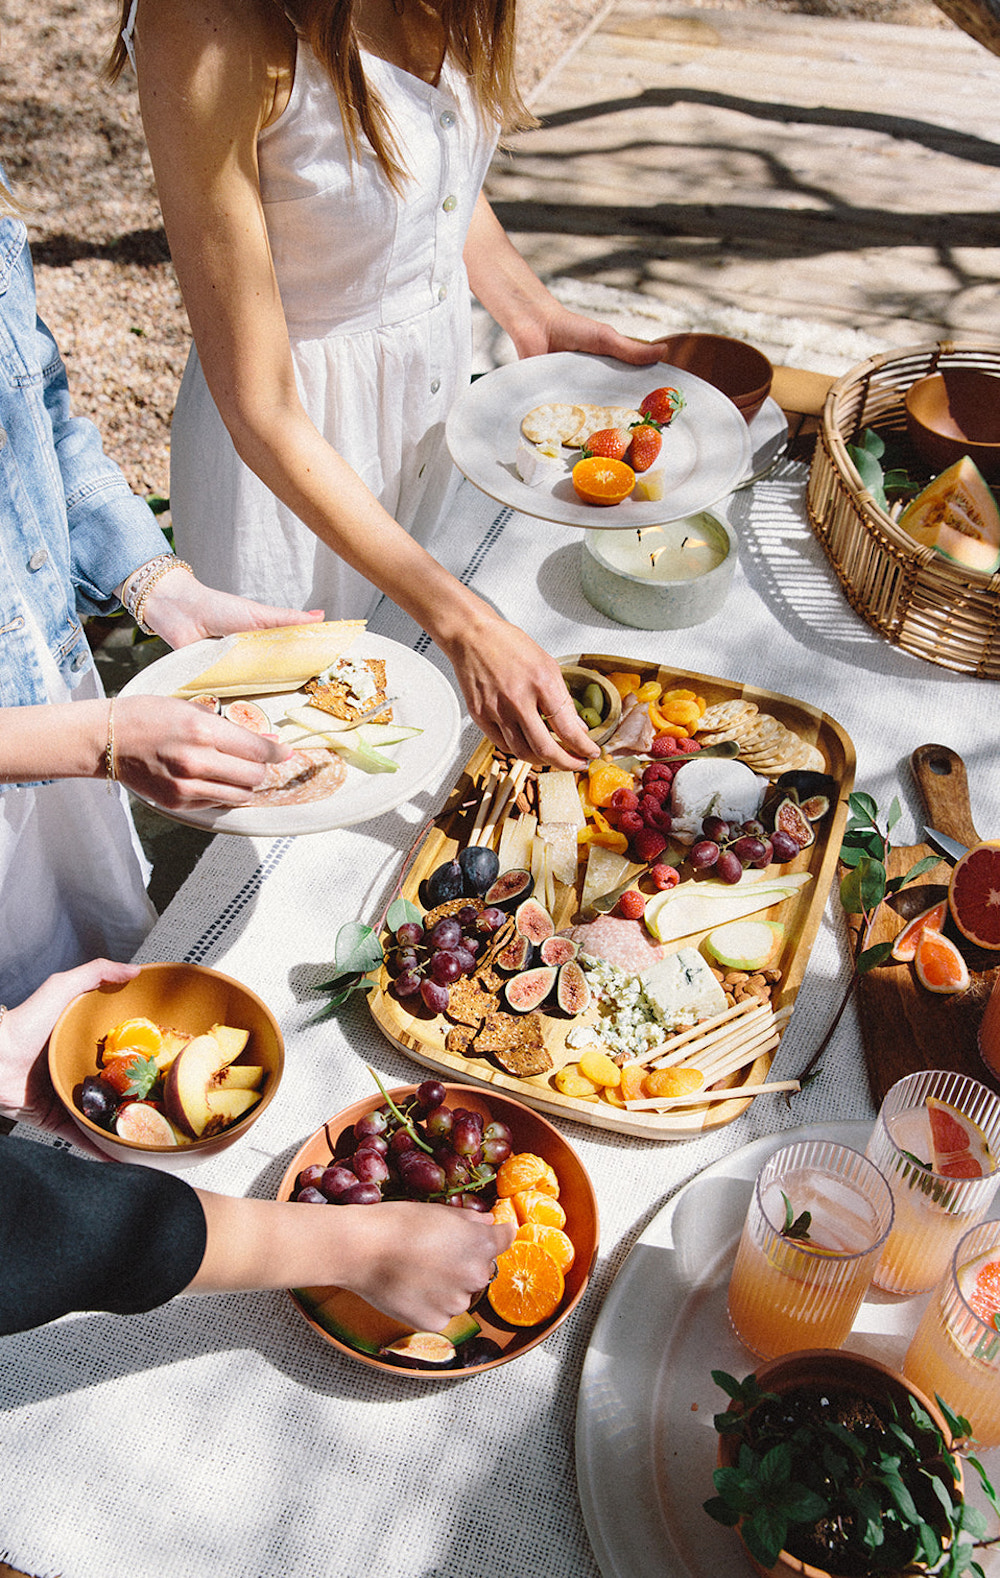 Best Cheese and Charcuterie Board for Spring Picnic - Grazing Table